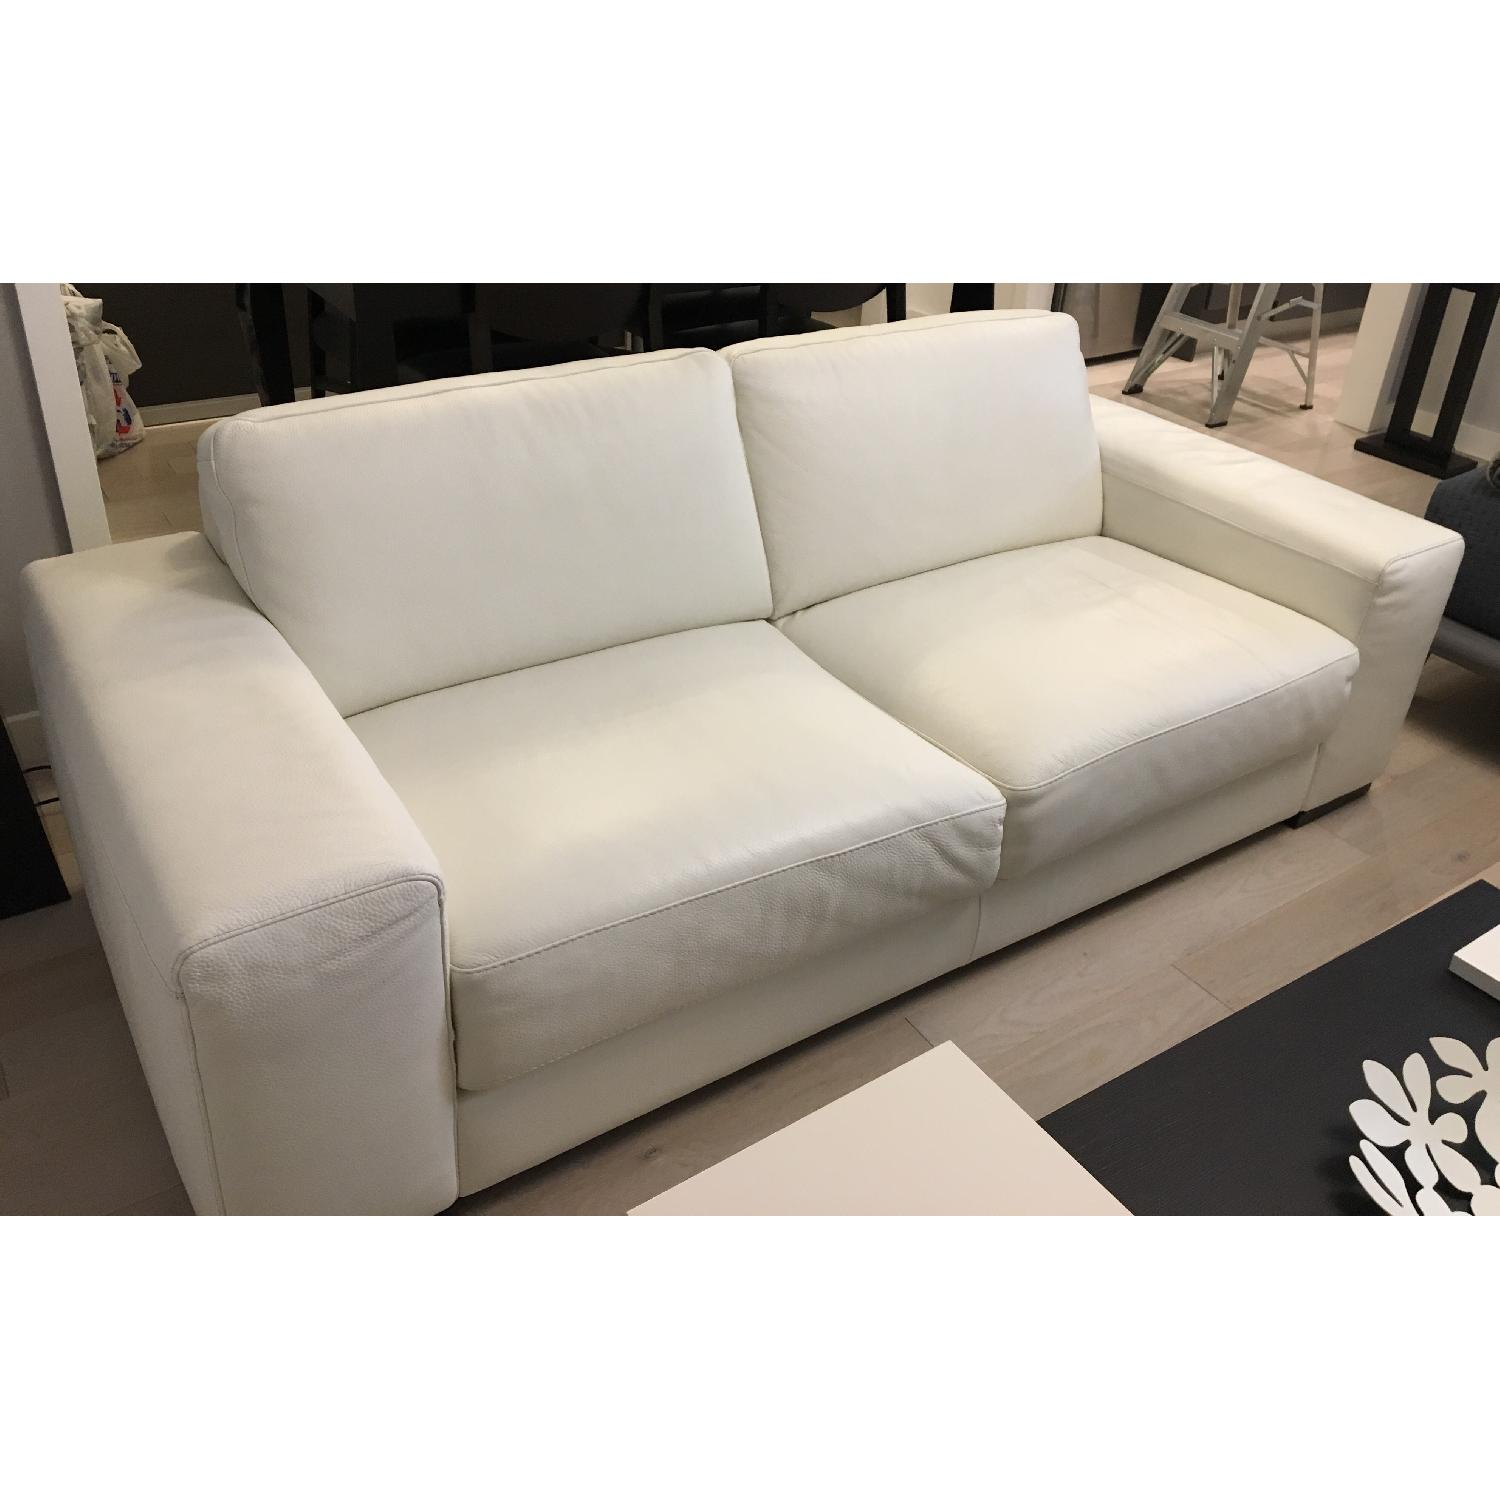 Natuzzi Clark White Leather Sofa - image-7